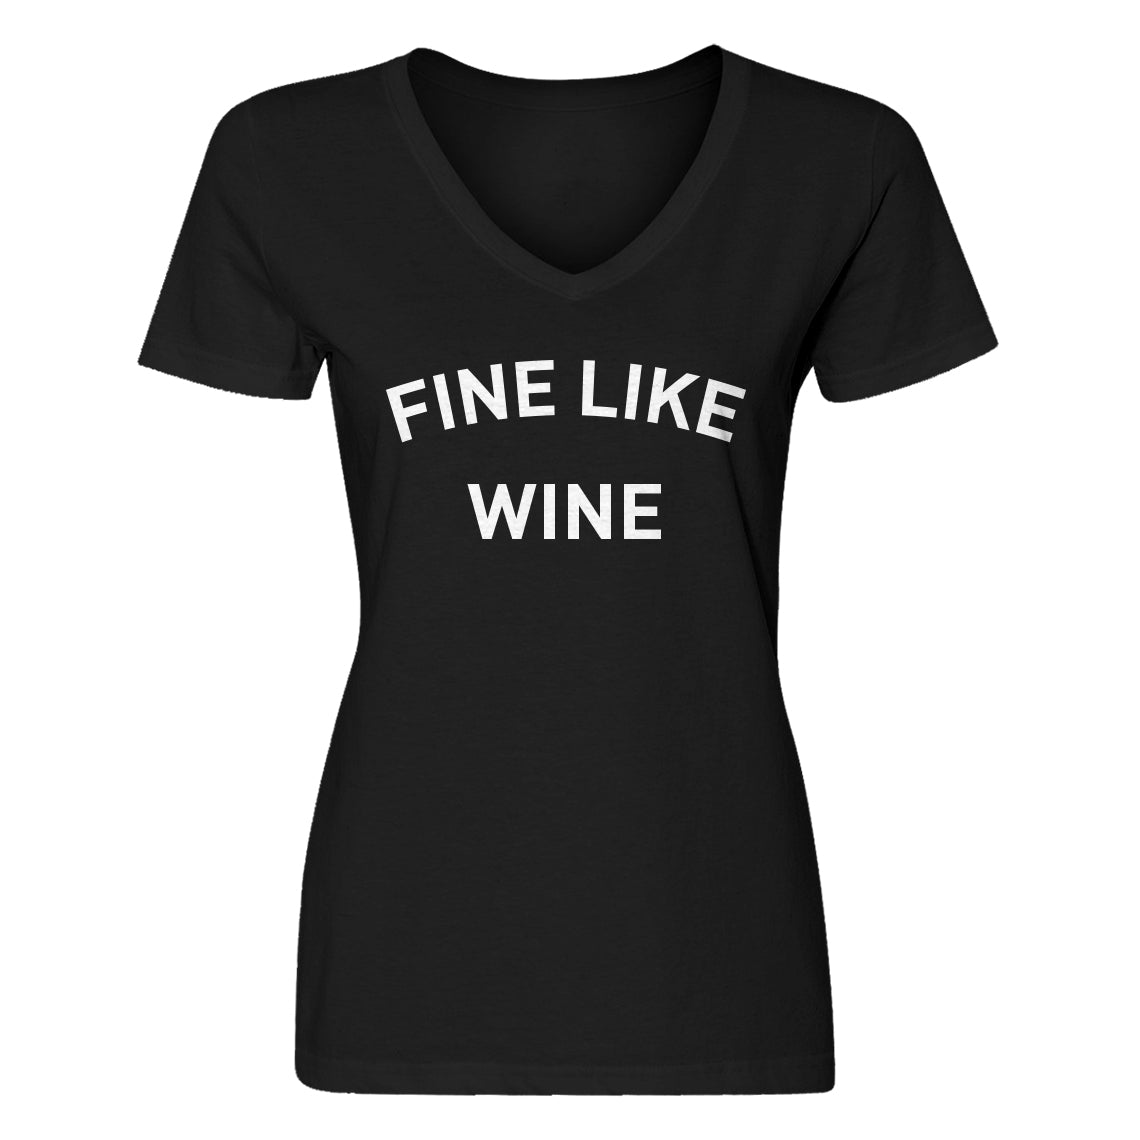 Womens Fine like Wine Vneck T-shirt